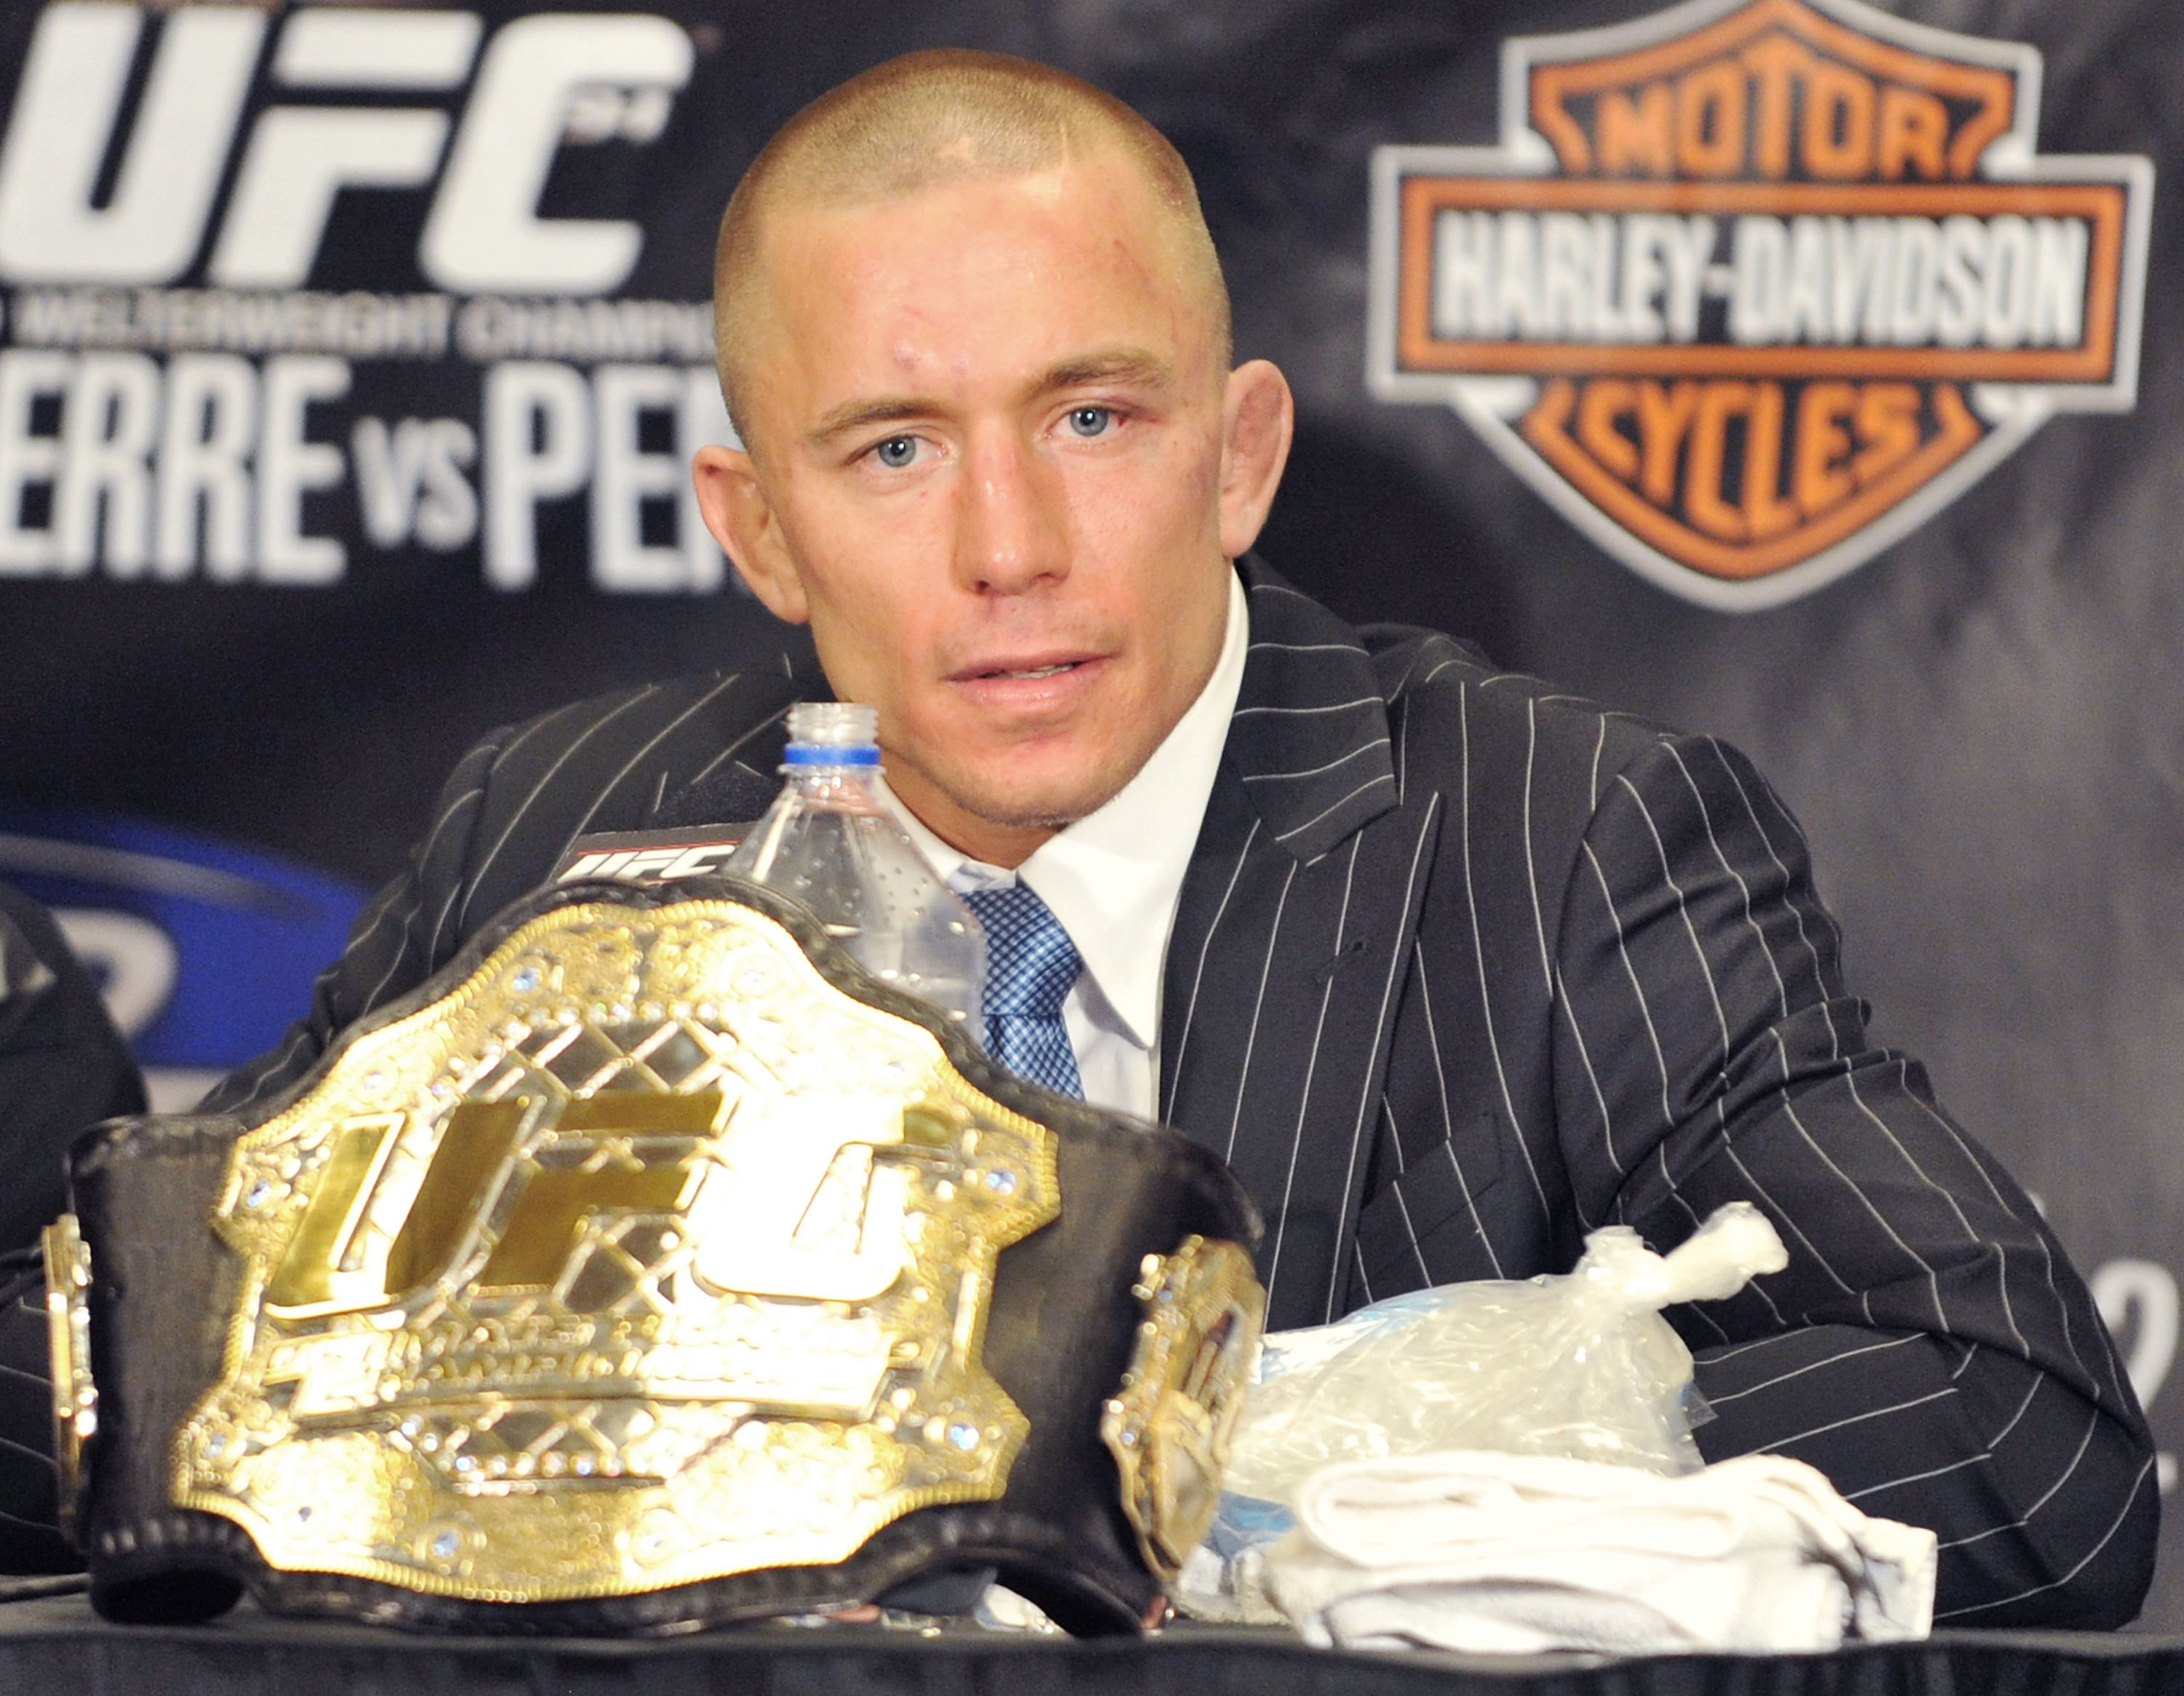 Georges St-Pierre in press conference